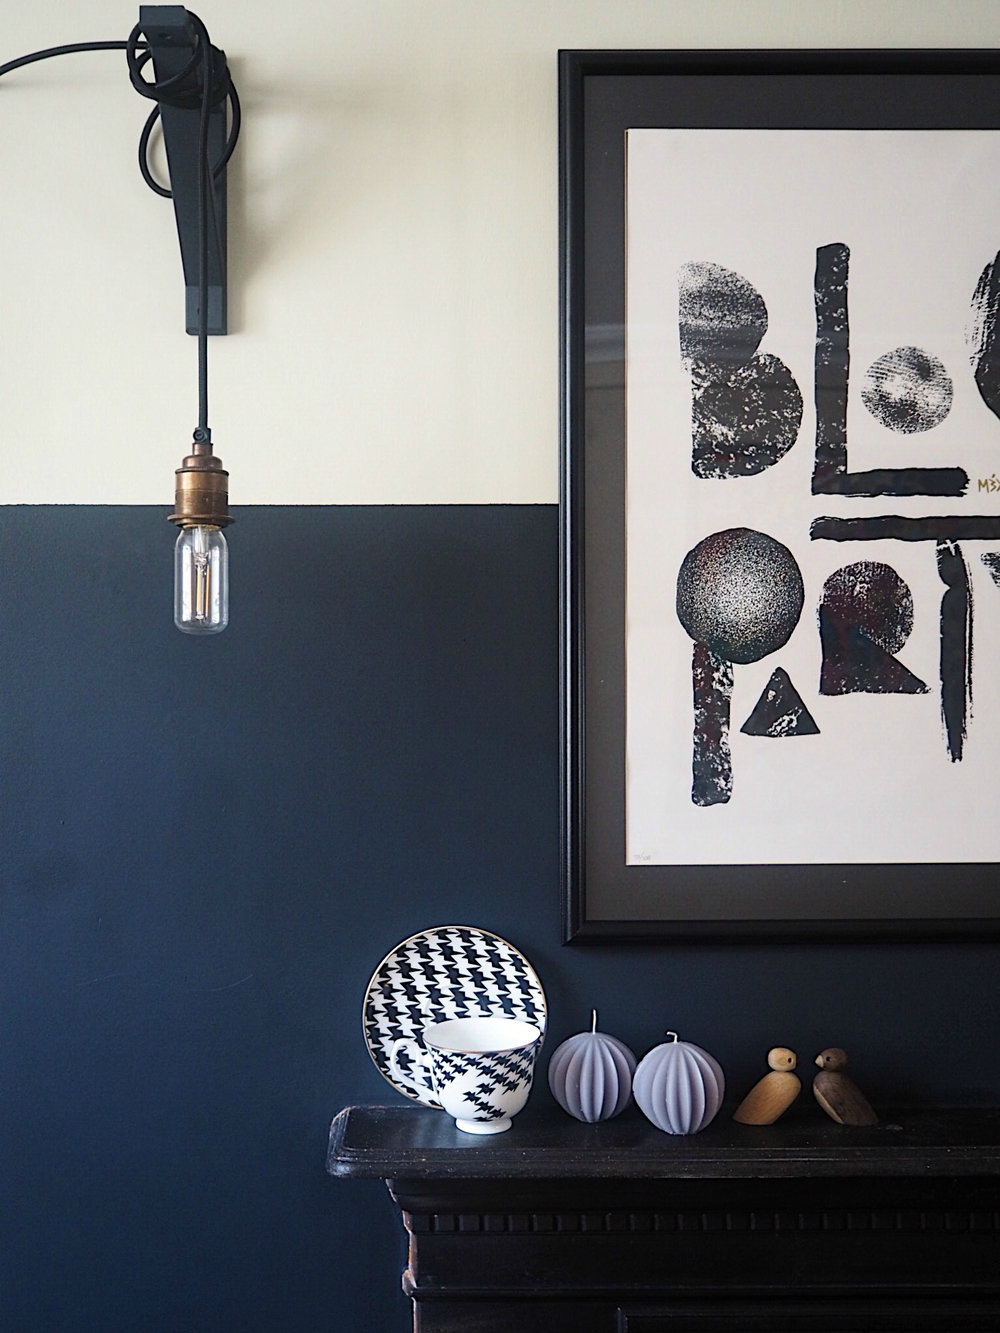 Why I Love Simple Plug In Sconce Wall Lights And What To Do If You Hate The Cable Melanie Lissack Interiors